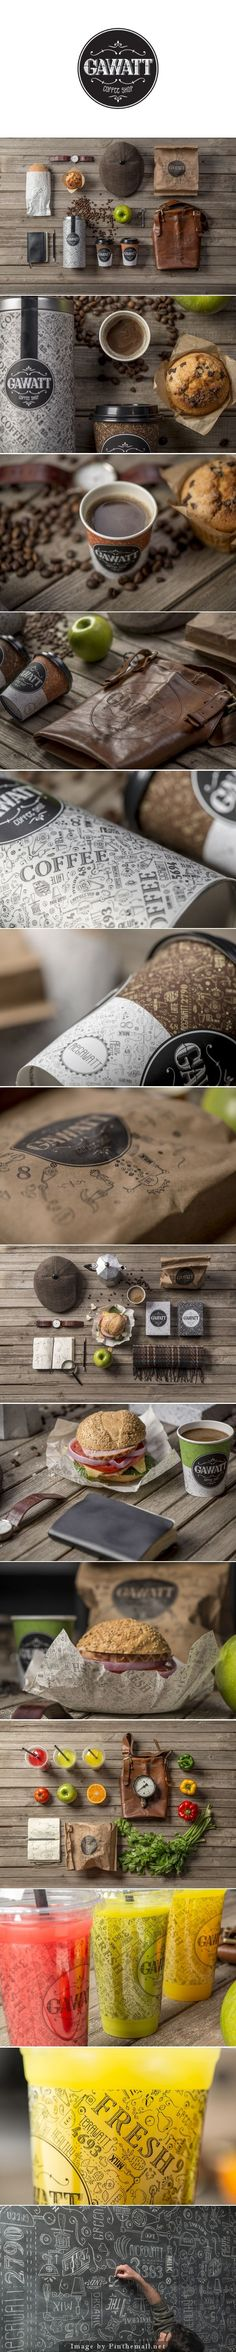 Gawatt Coffee Shop Branding